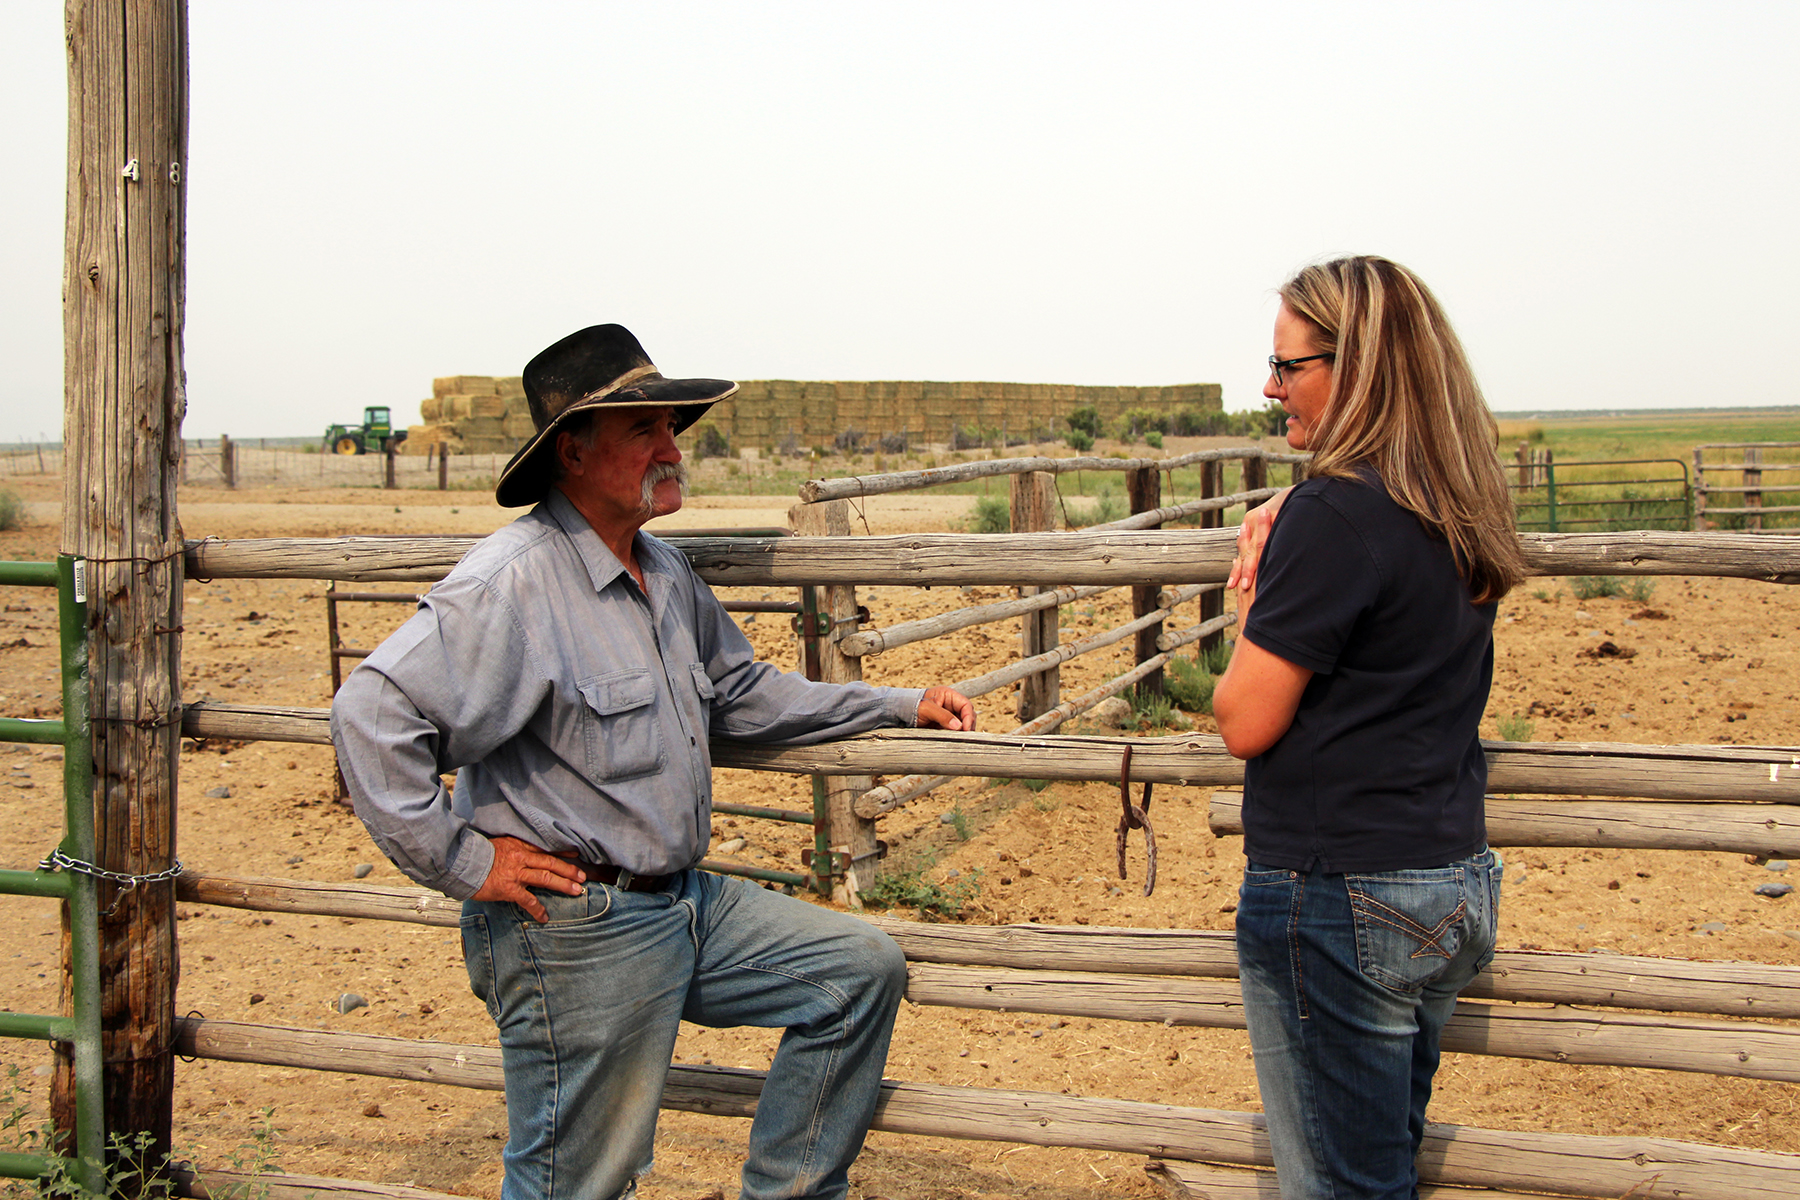 Ranch Manager Tim Dufurrena and NRCS Nevada's Leah Mori talk about conservation